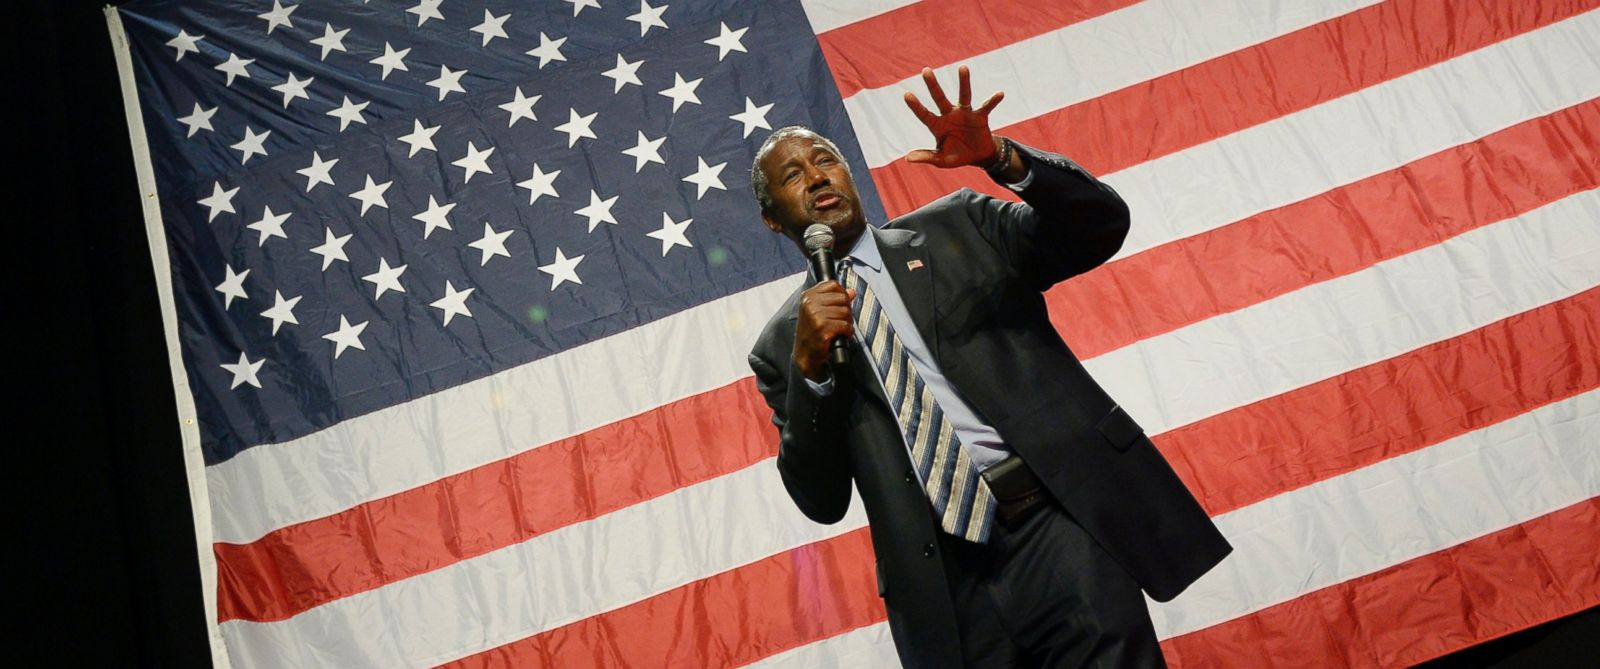 PHOTO: Republican presidential candidate Ben Carson speaks during a campaign rally at the Anaheim Convention Center, Sept. 9, 2015 in Anaheim, Calif.